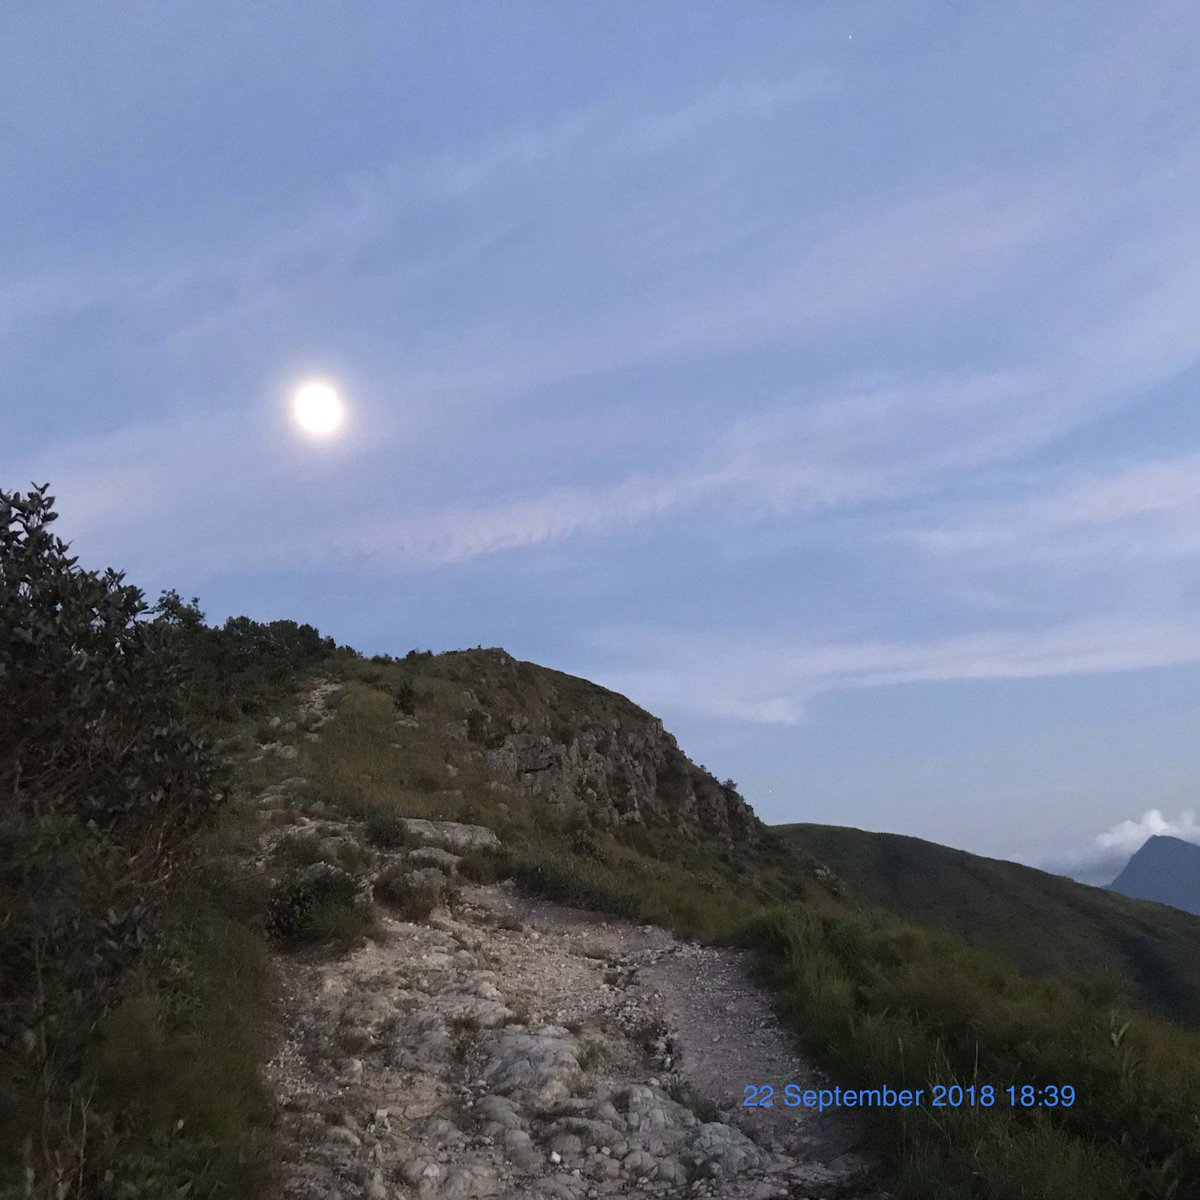 Continue hike into evening under full moon light